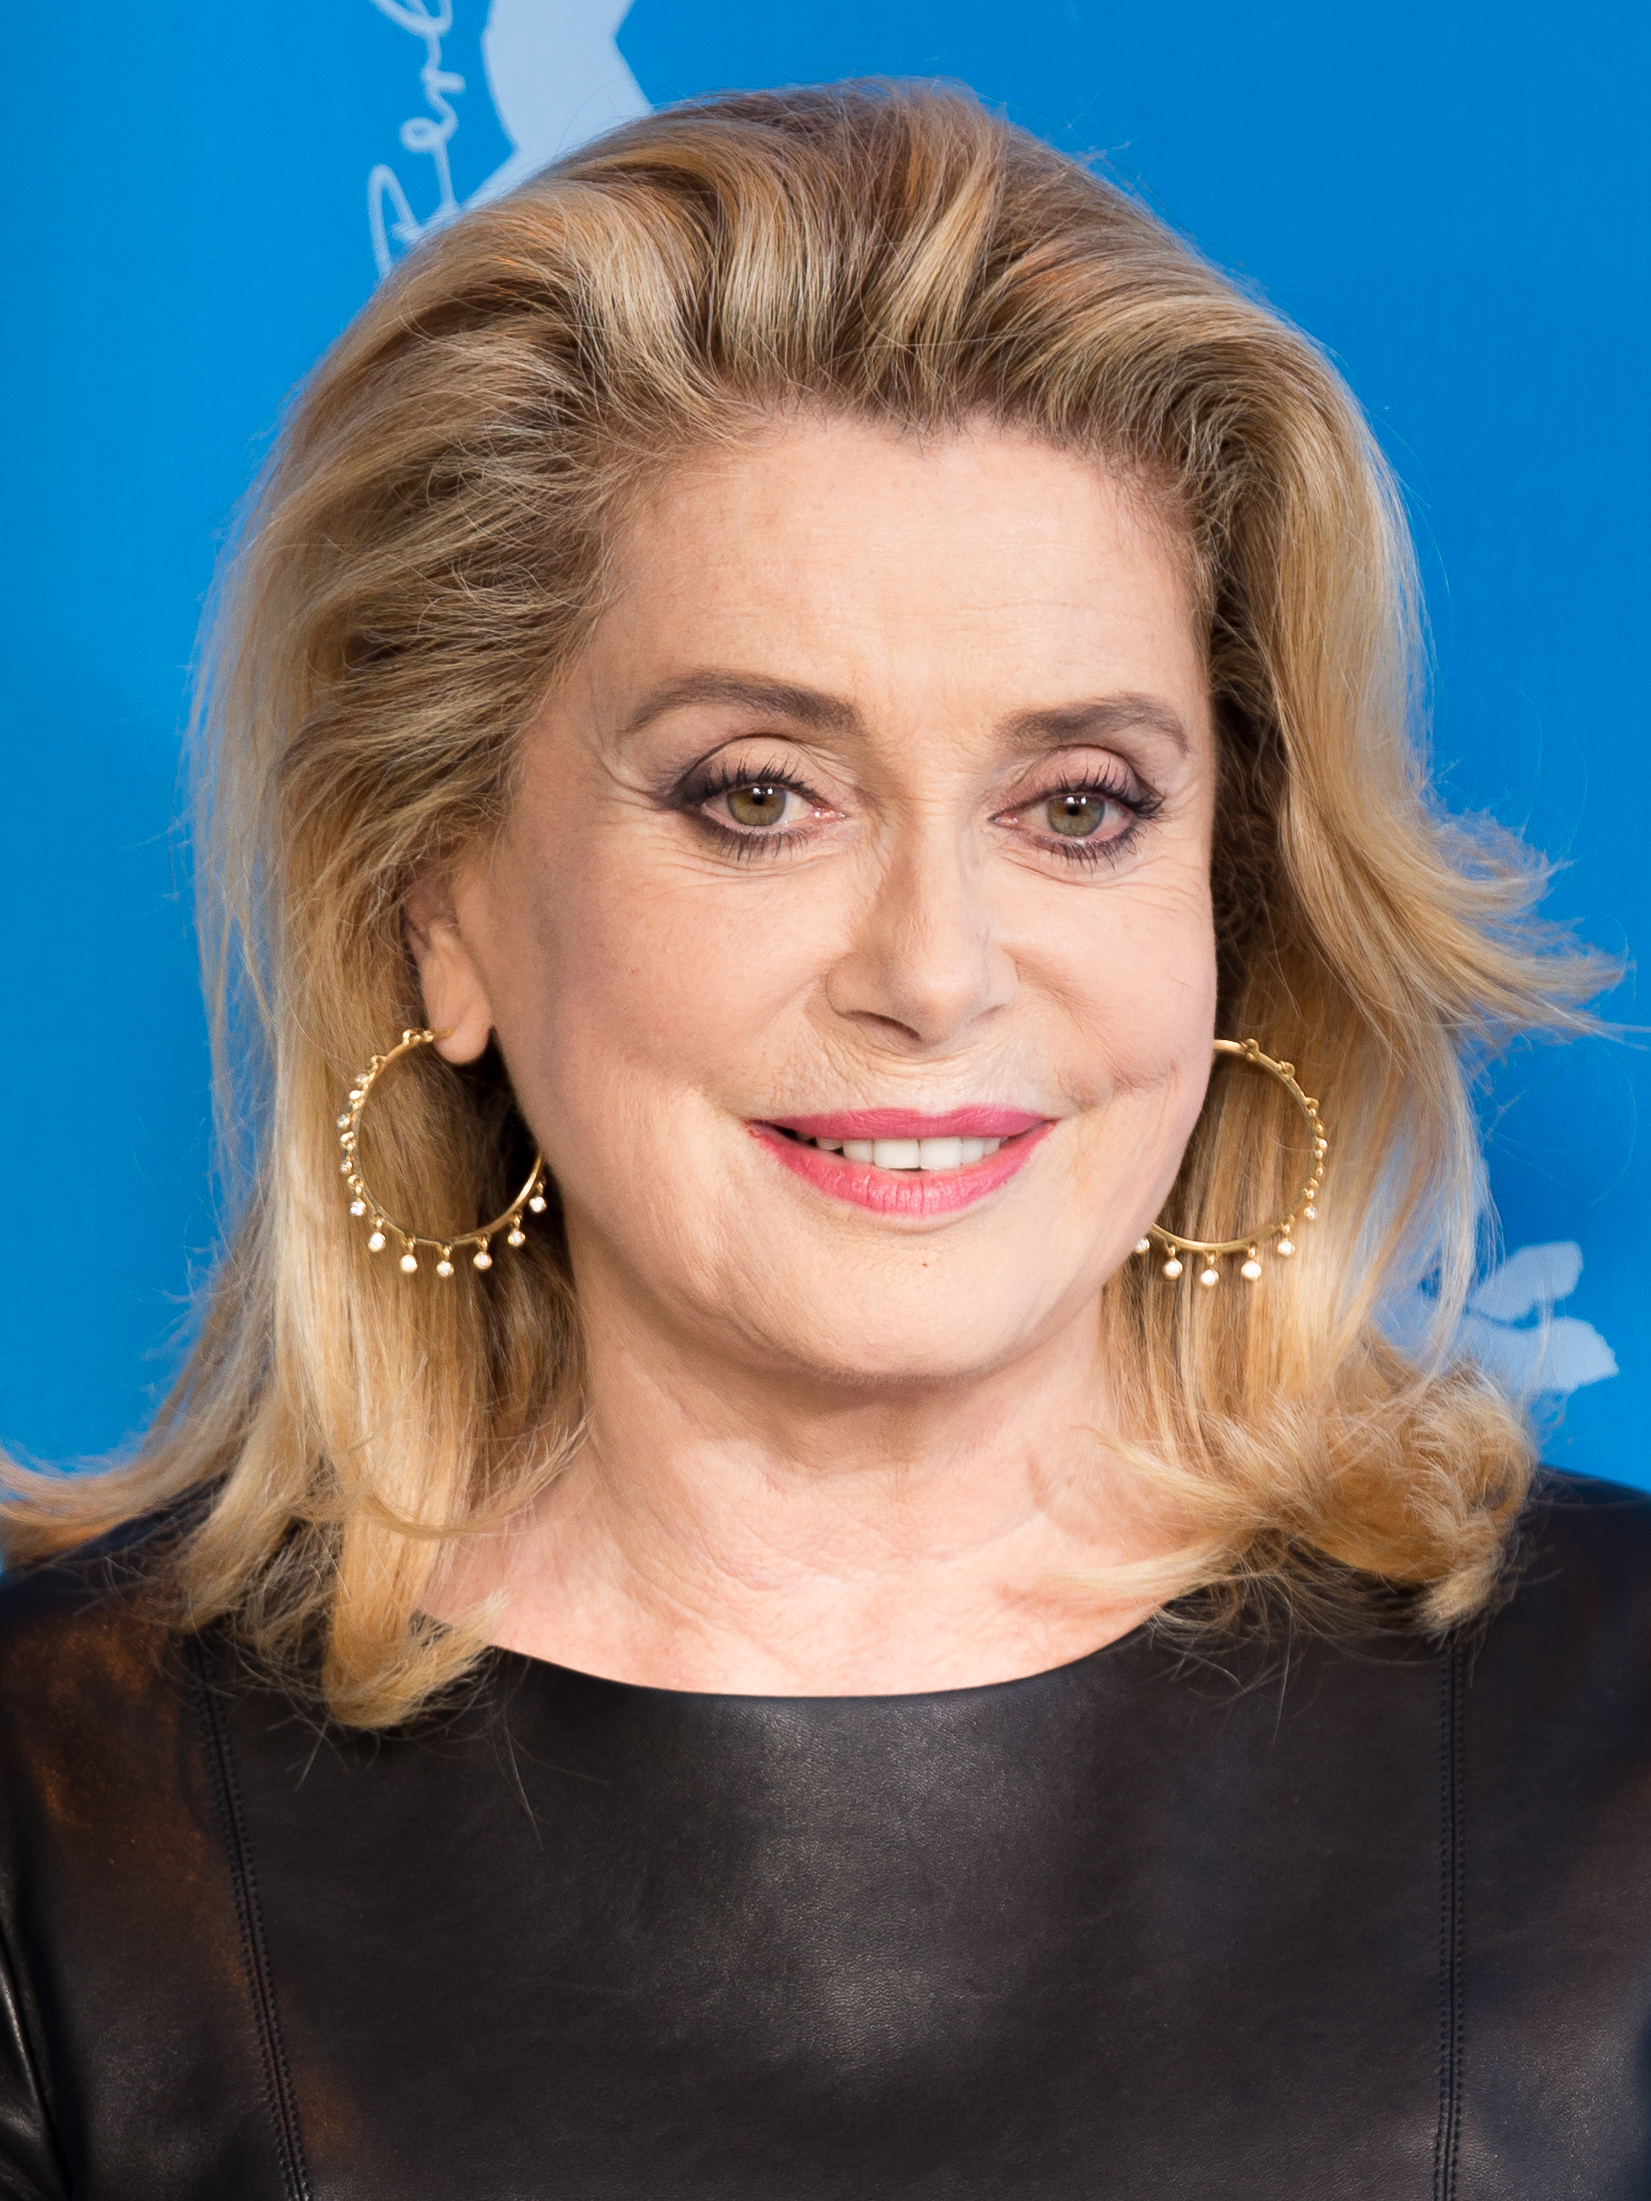 The 74-year old daughter of father (?) and mother(?) Catherine Deneuve in 2018 photo. Catherine Deneuve earned a  million dollar salary - leaving the net worth at 75 million in 2018